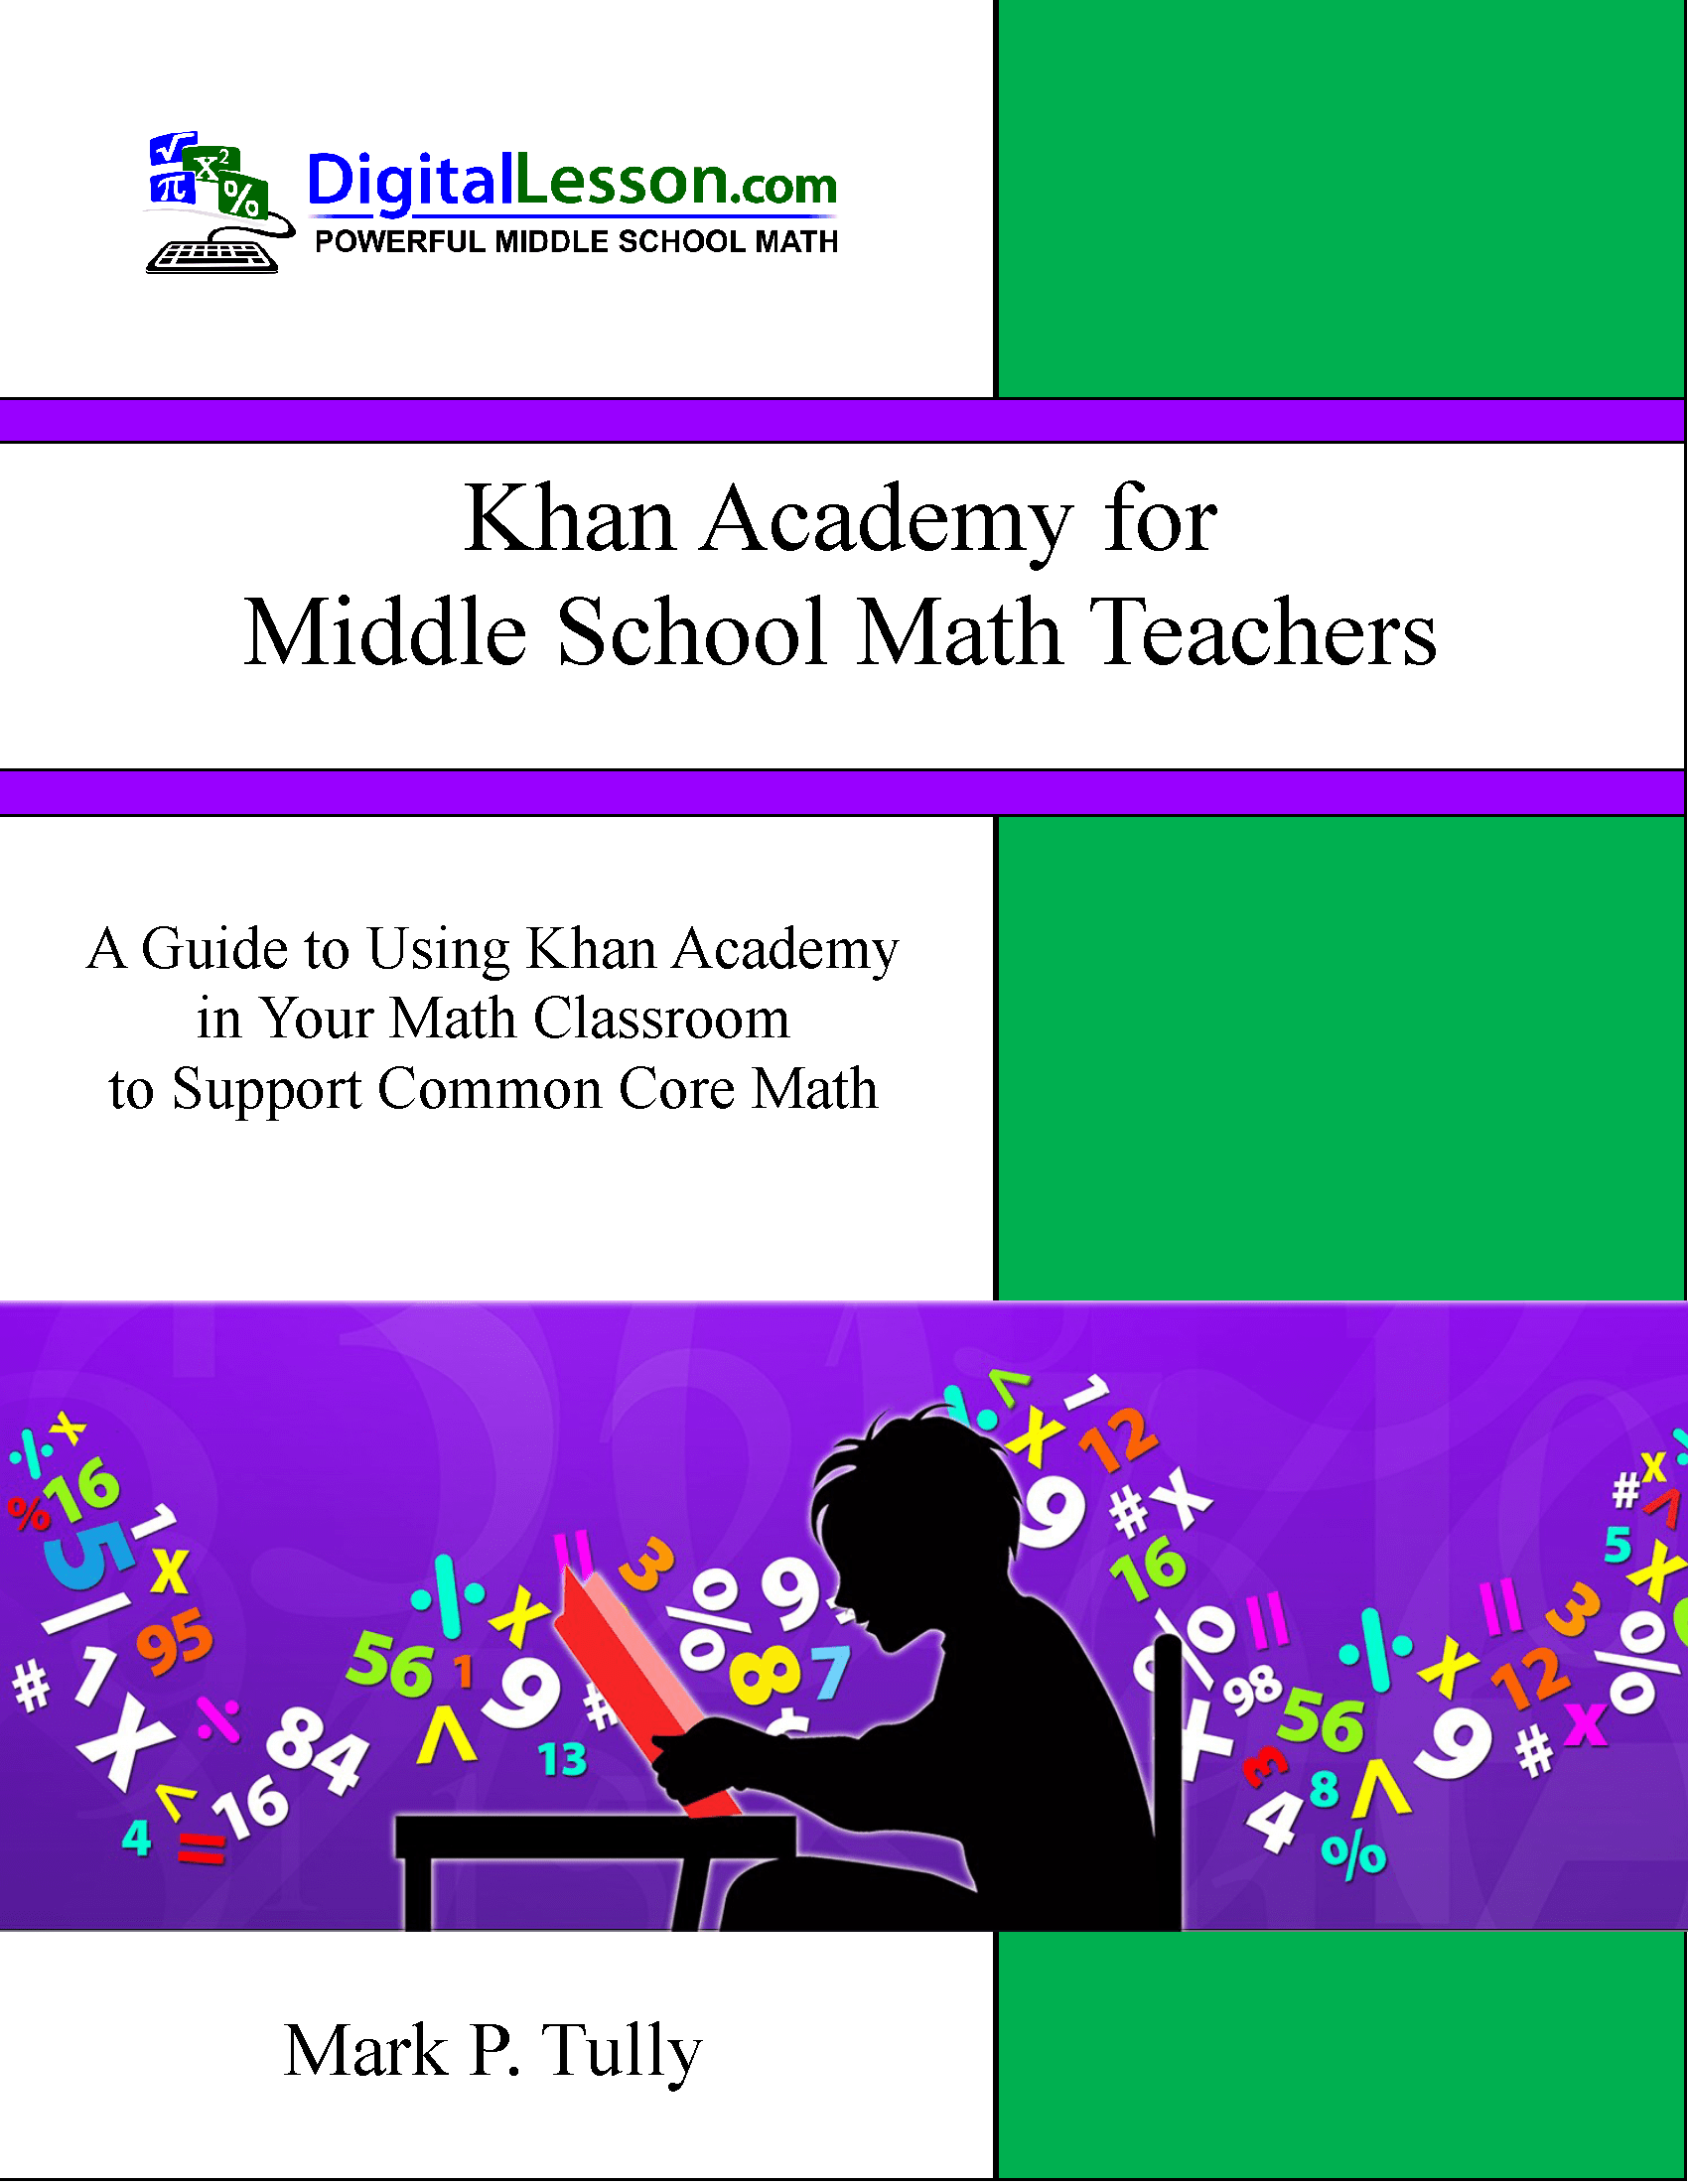 Khan Academy For Middle School Math Teachers Is A Guide To